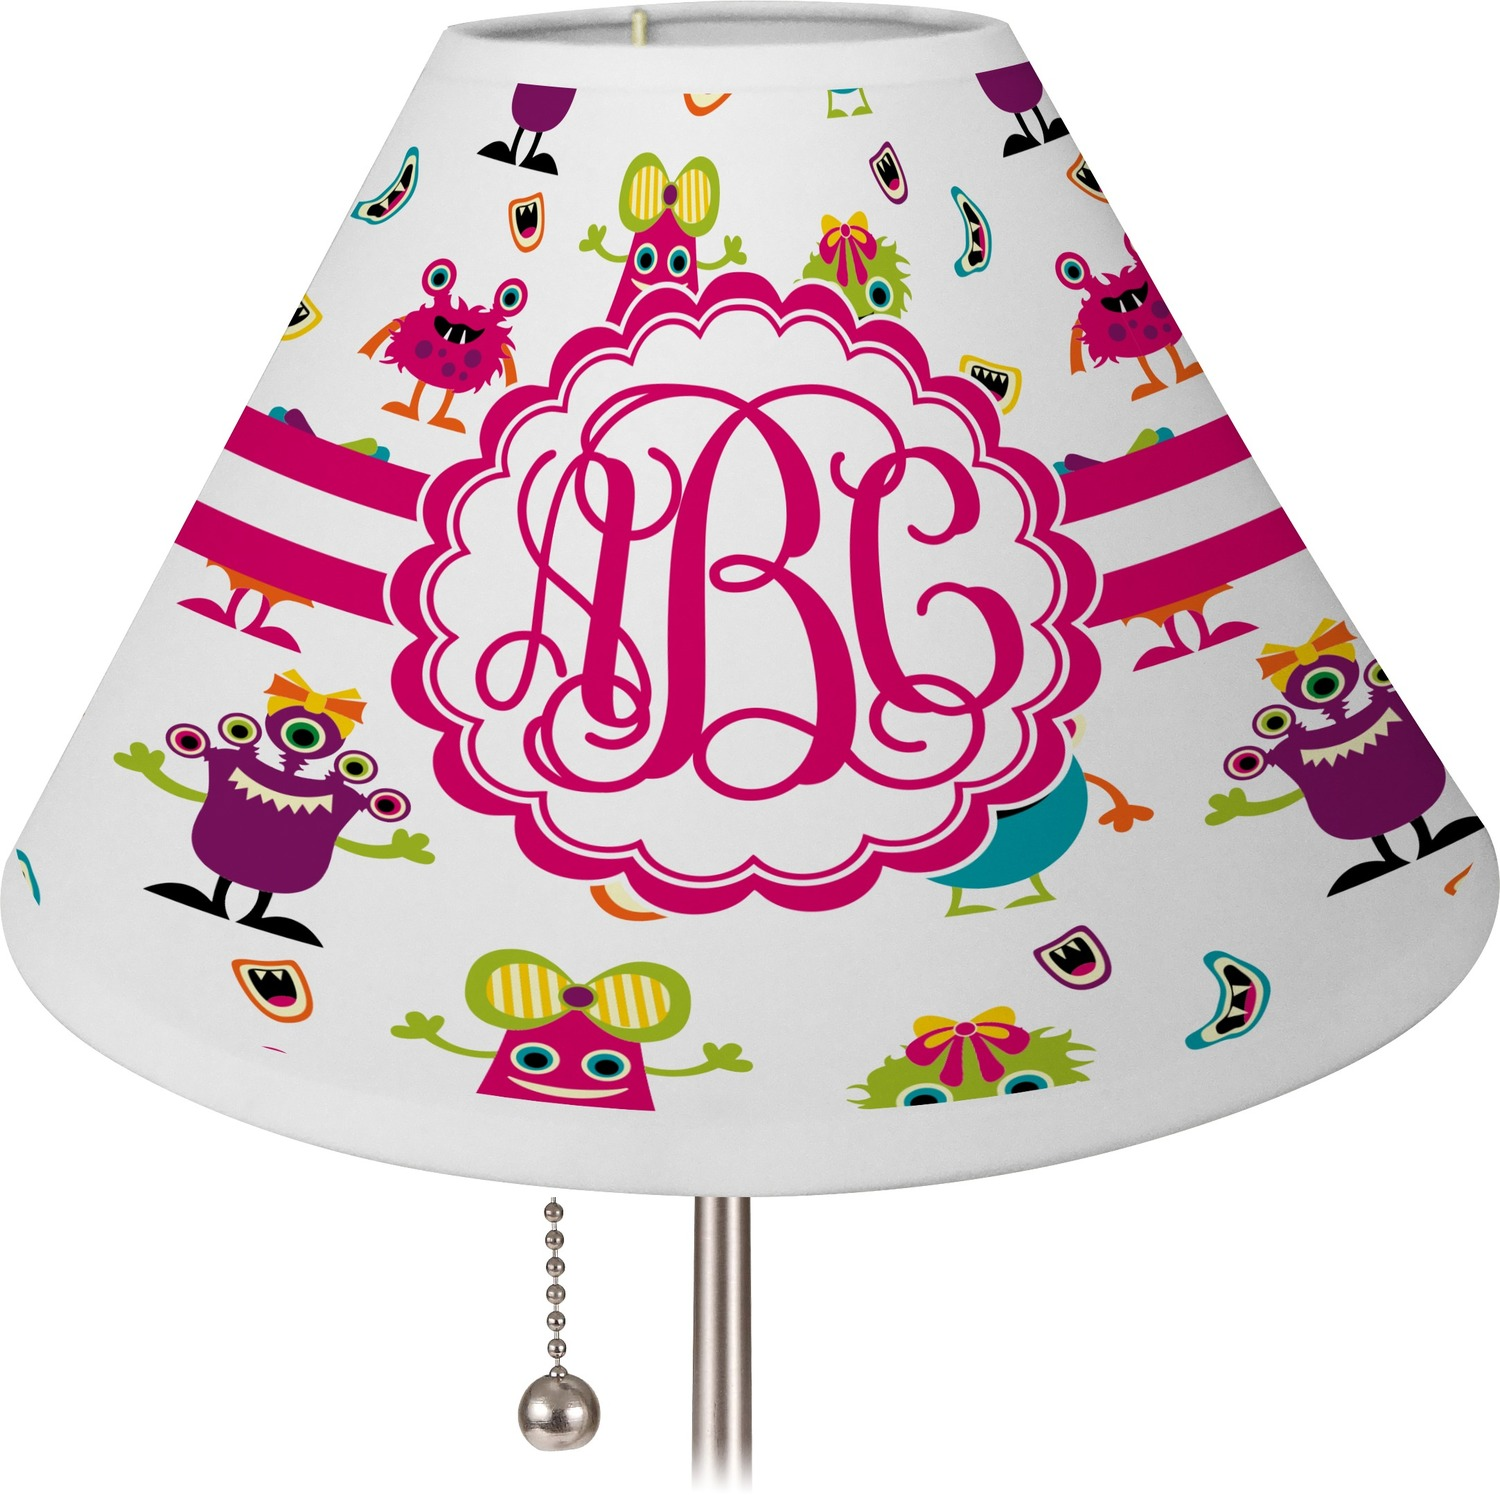 Girly Lamps For Bedroom: Girly Monsters Empire Lamp Shade (Personalized)